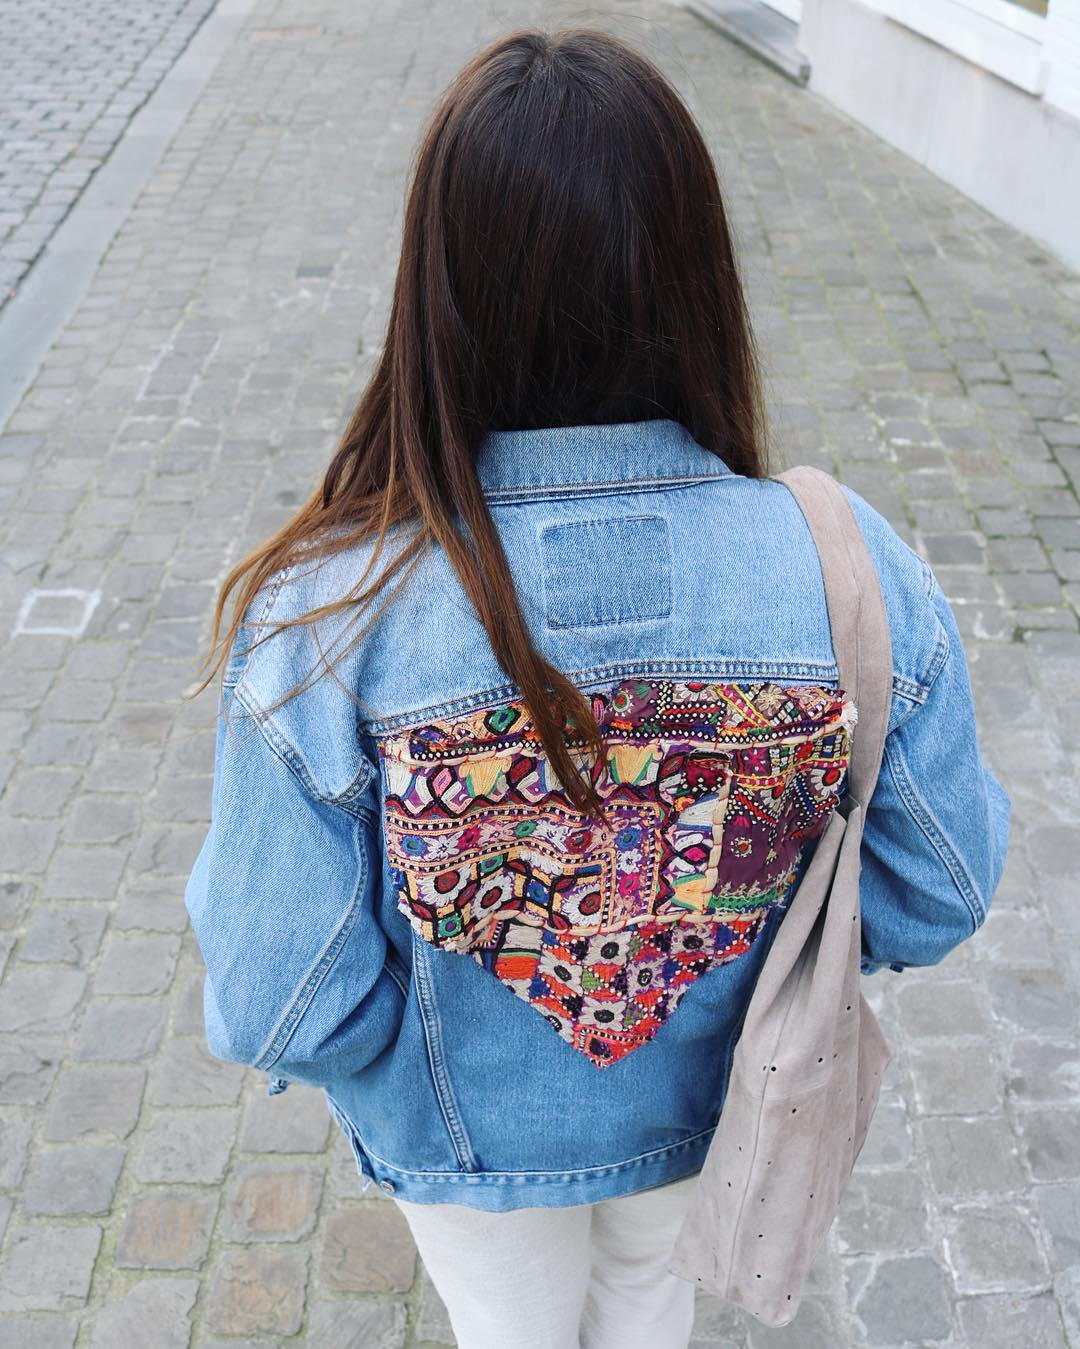 BOHEMIAN JEANS JACKET 🤘🏽🤘🏽🤘🏽🌺🌺🌺 #redone #vintage #levis #ss16 #easychic #easylook #easystyle #relaxlook #totallook #igfashion #instafashion #ootd #outfitinspo #potd #stylechic #fashionblogger #hippie #hippiechic #lotd #whatiwore #caroherentals #multibrand #fashionstore #boho #bohemian #bohochic #maisonirem #selectedfemme